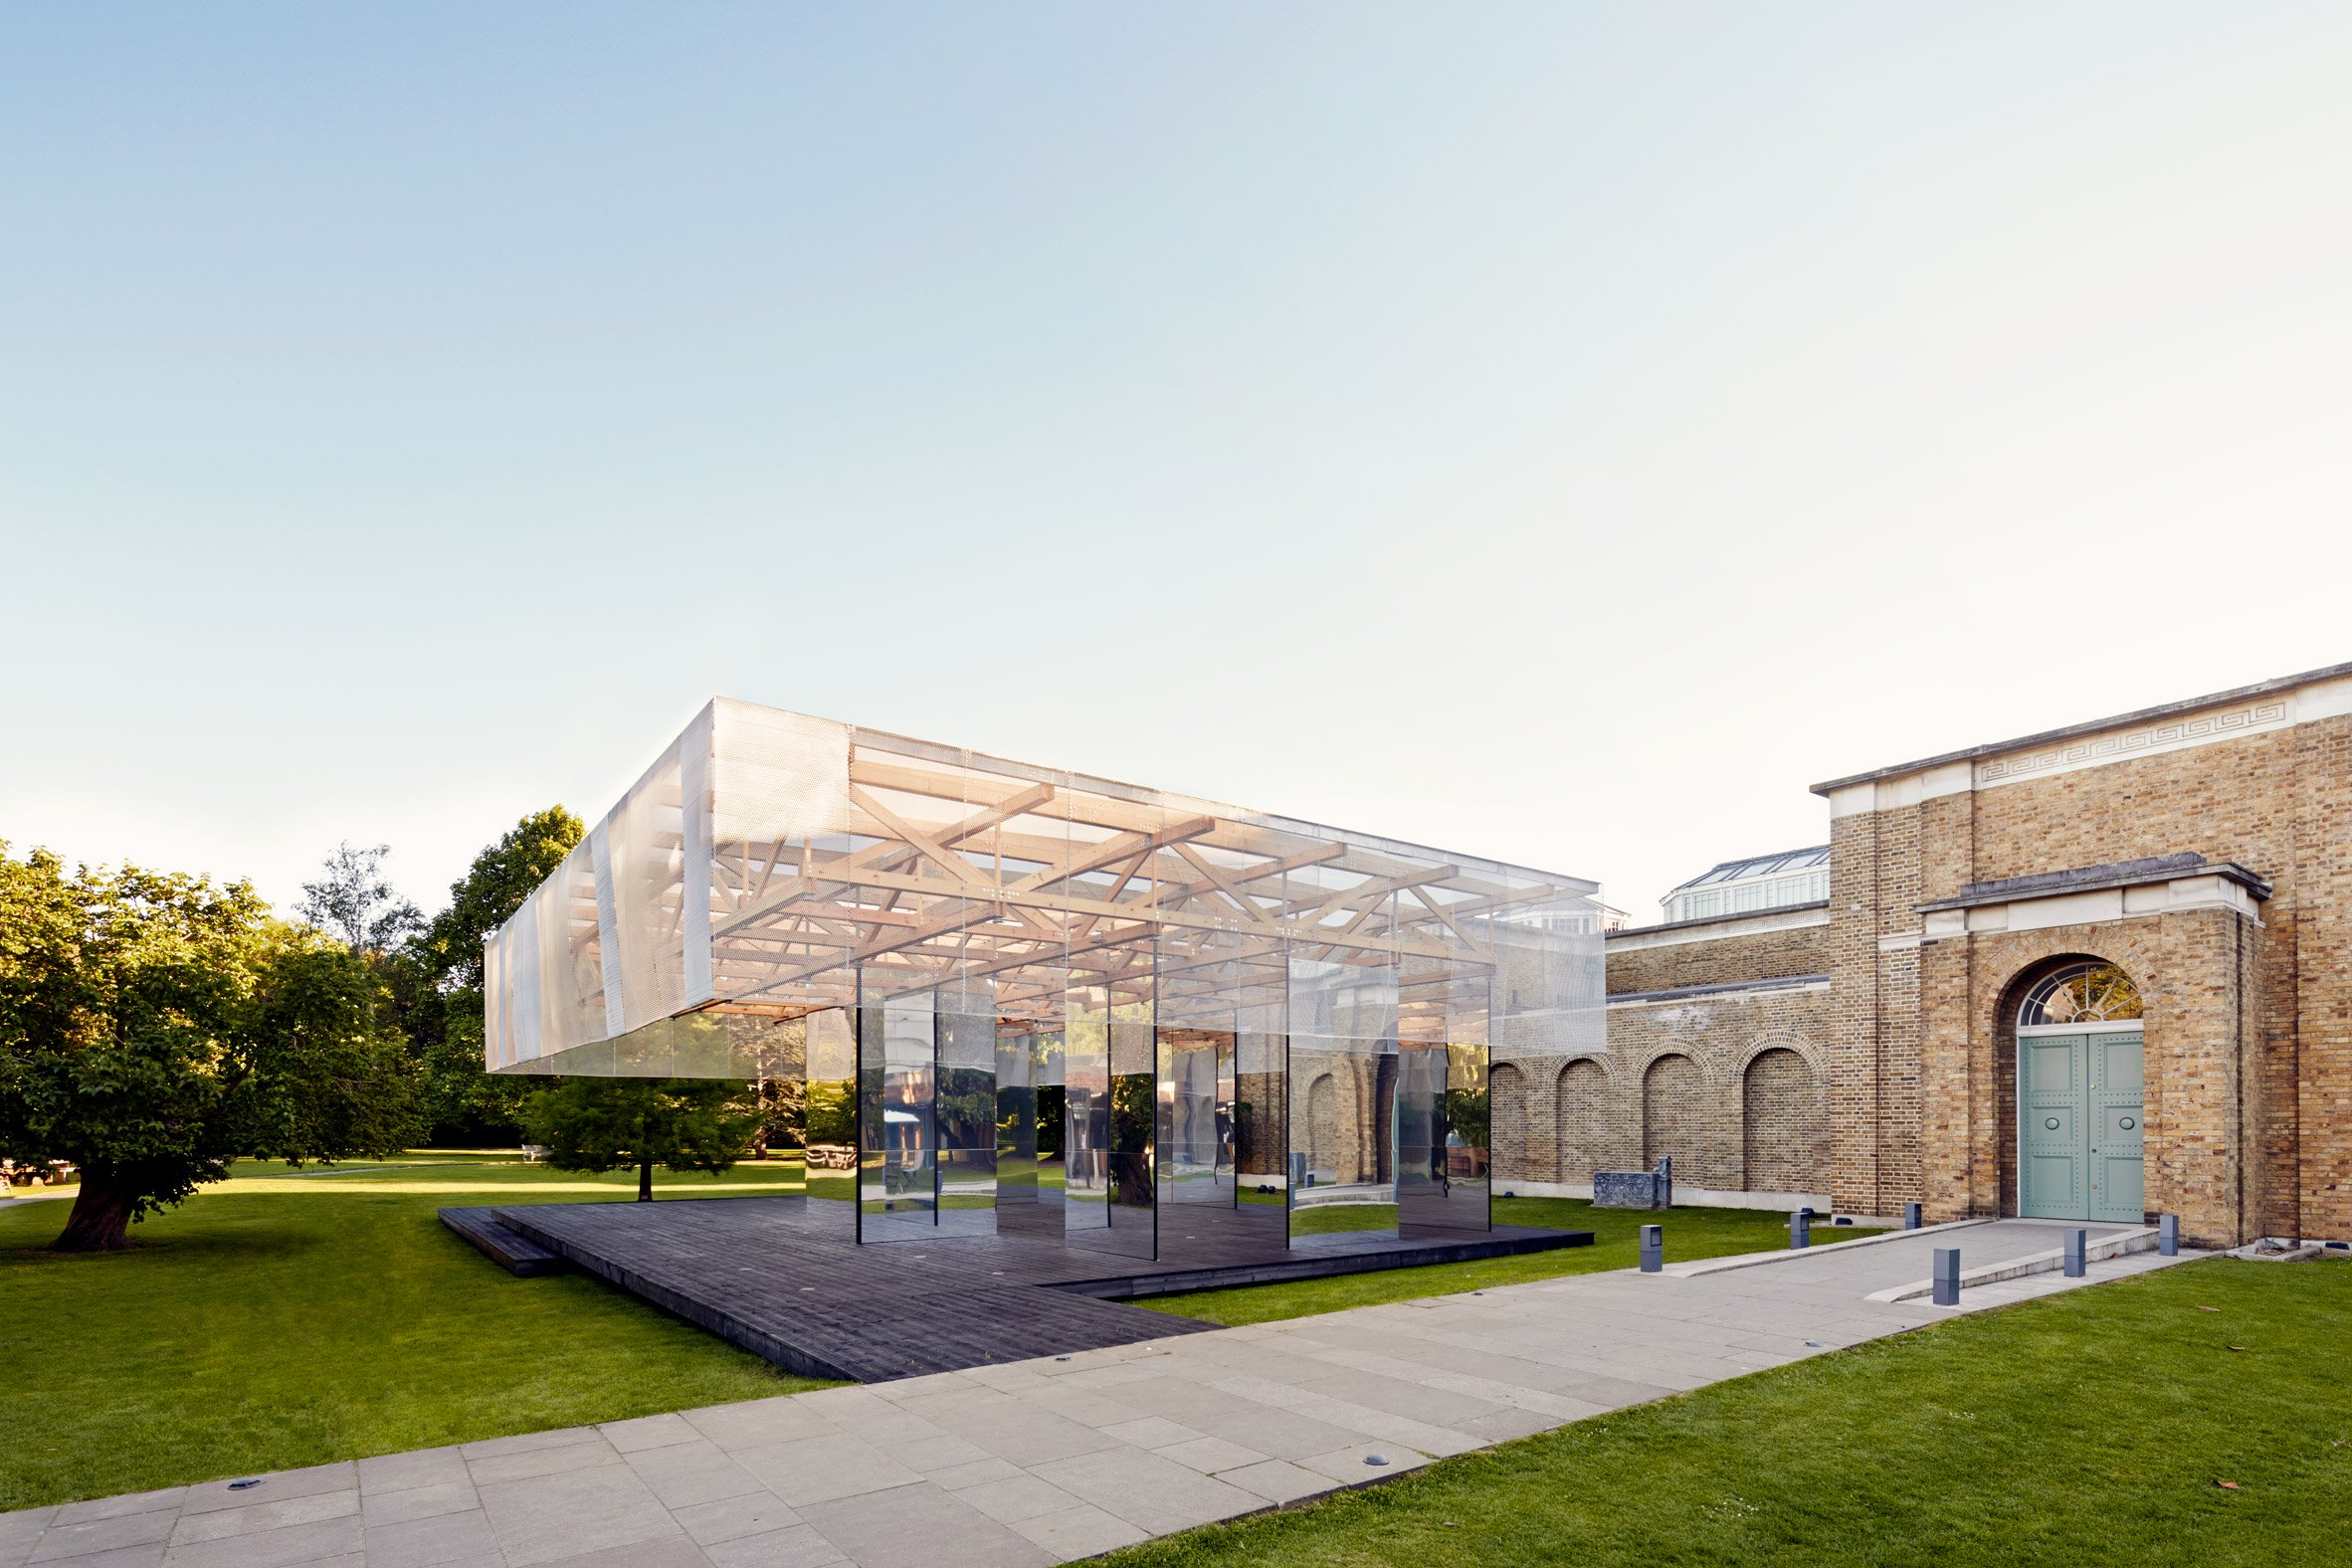 John Soane's Dulwich Picture Gallery informs summer pavilion for London Festival of Architecture